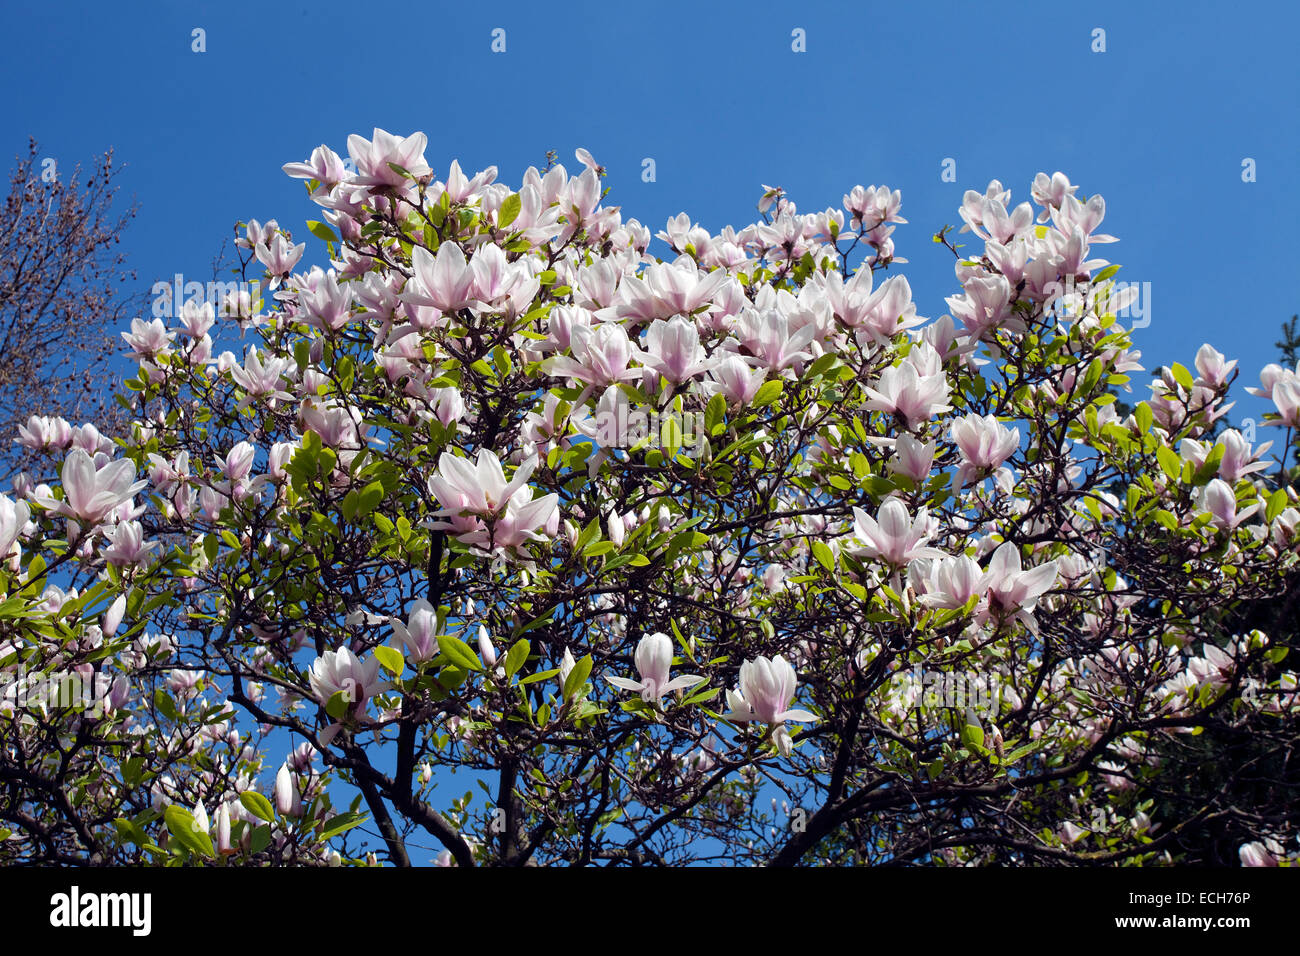 Saucer Magnolia (Magnolia x soulangeana), in full bloom, Bavaria, Germany - Stock Image